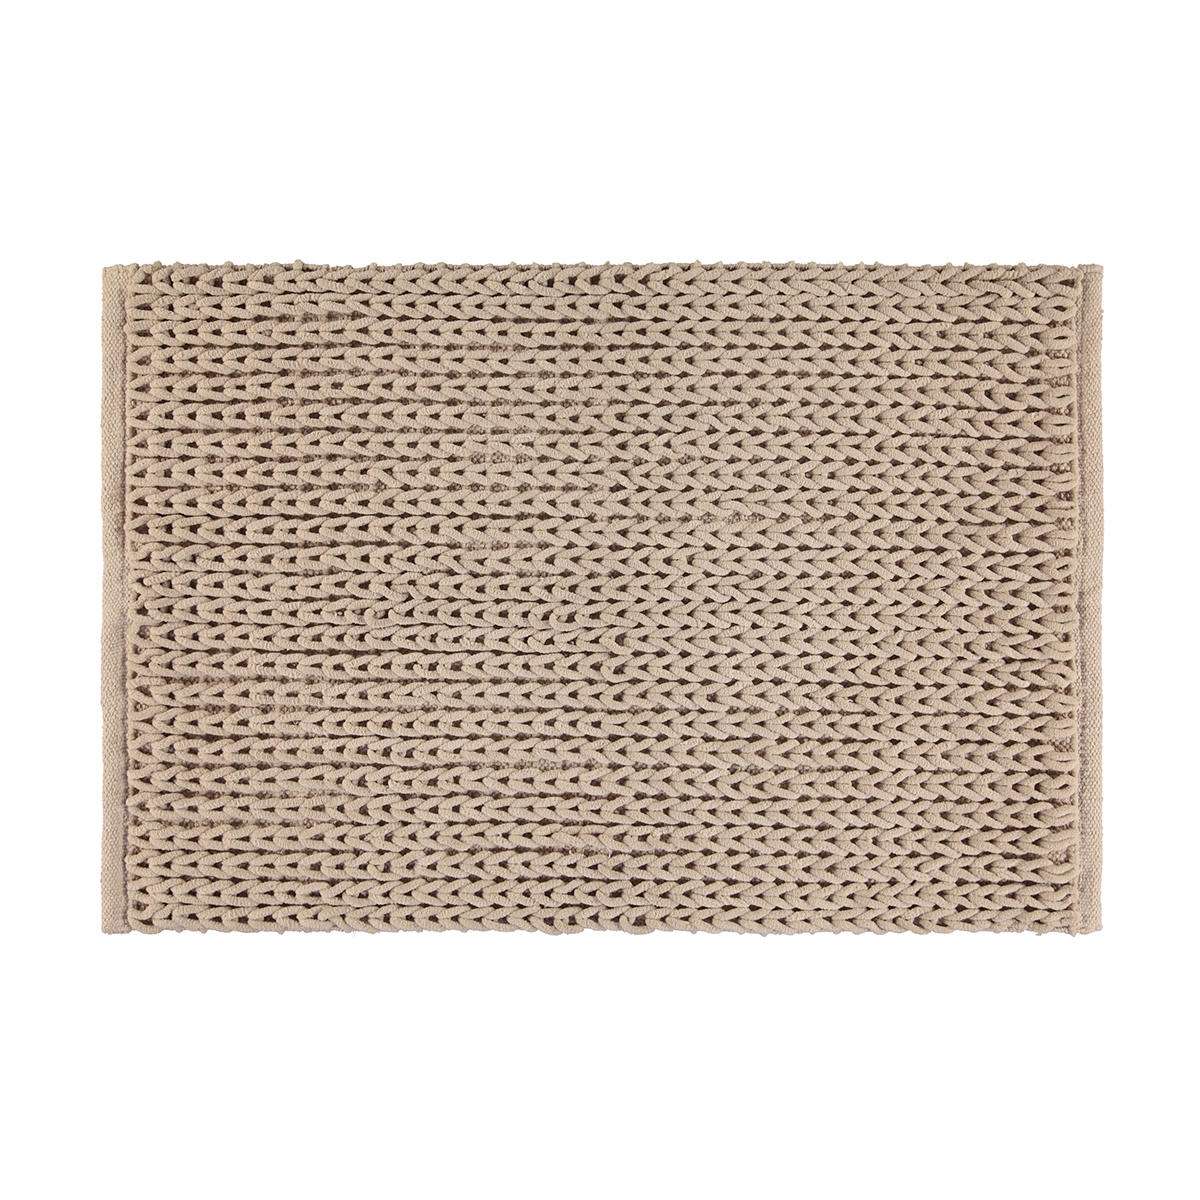 Permalink to Wooden Bath Mat Kmart